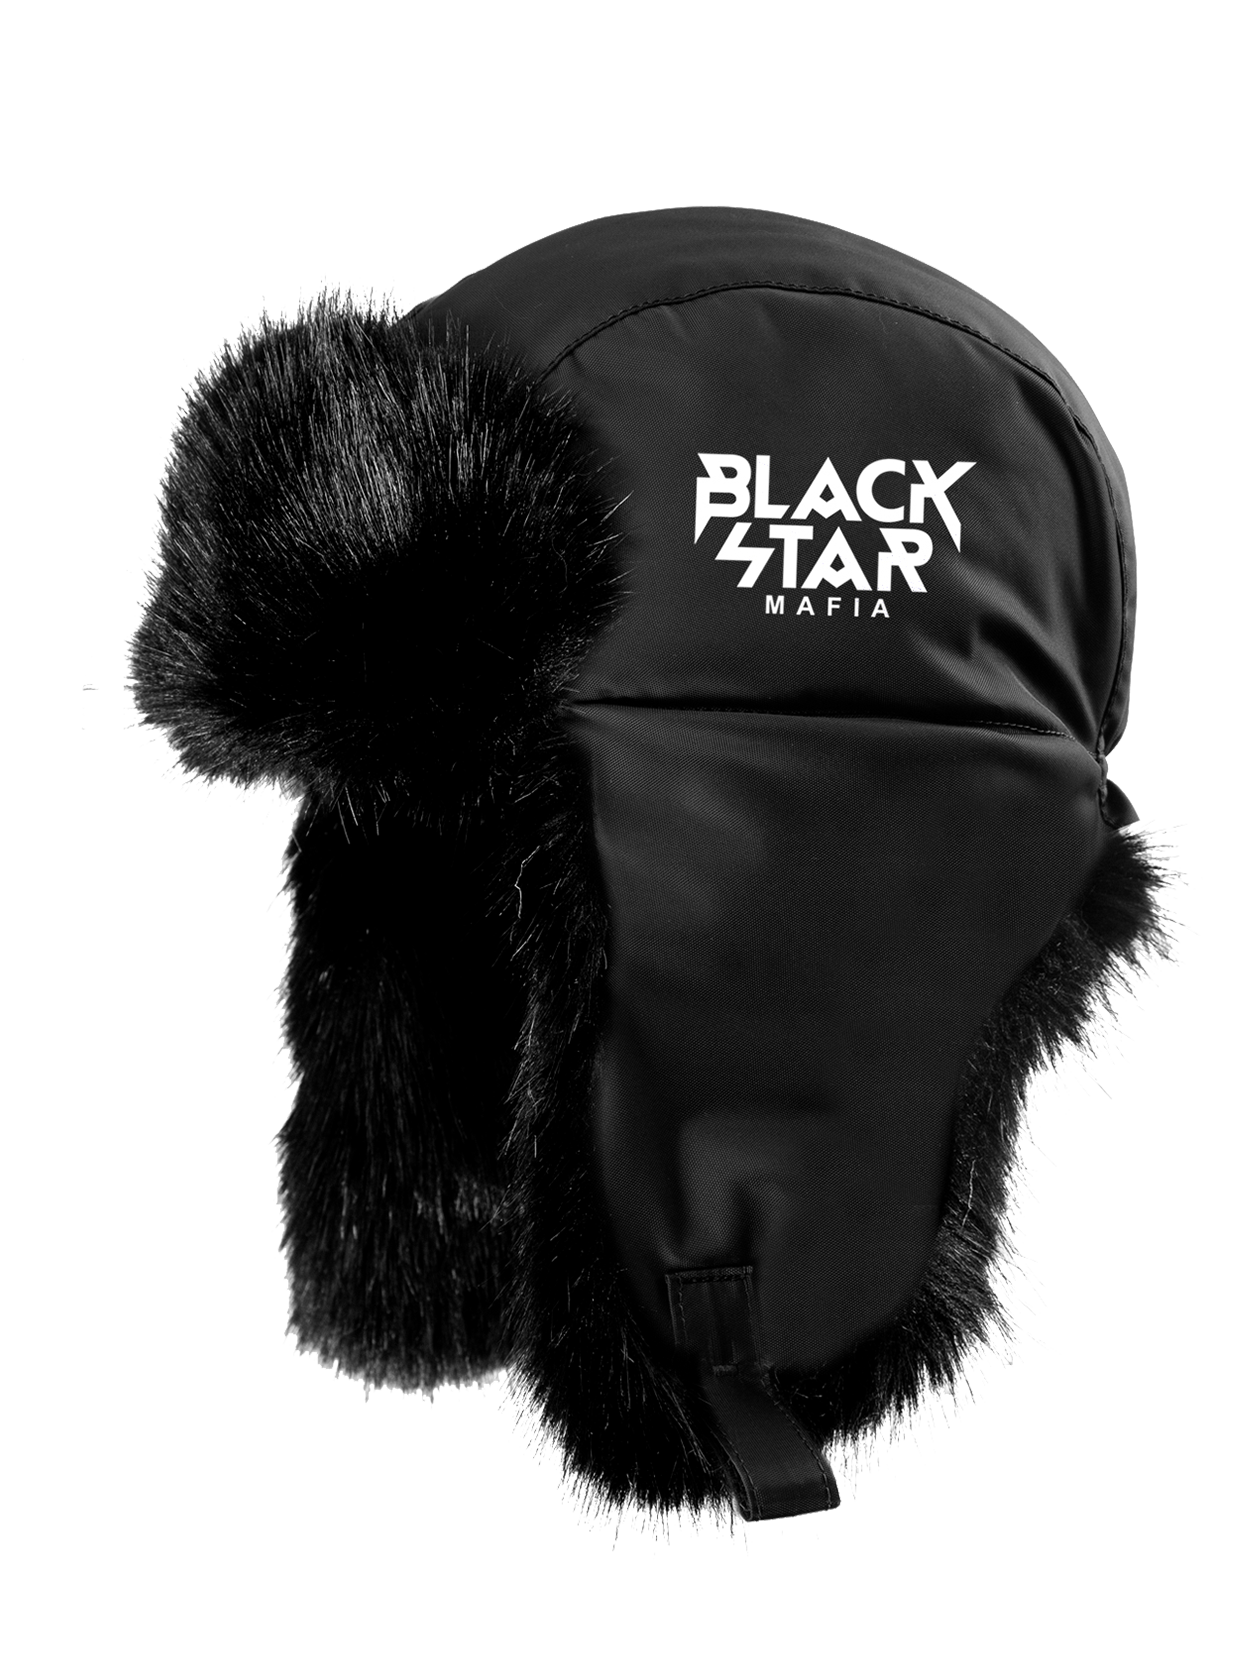 Unisex Hat with ear flaps Black Star MafiaHat with earflaps, appropriate for any season, made of practical neoprene, lined up with high-quality fur inside – an essential accessory for a cold season. The distinctive model unisex is represented in black colour, decorated with an embroidery Black Star Mafia, what makes it very stylish. There are rivets, with the help of which it is possible to change the outlook of the model. It will create comfort and warmth, completing a bright look.<br><br>size: One size<br>color: Black<br>gender: unisex